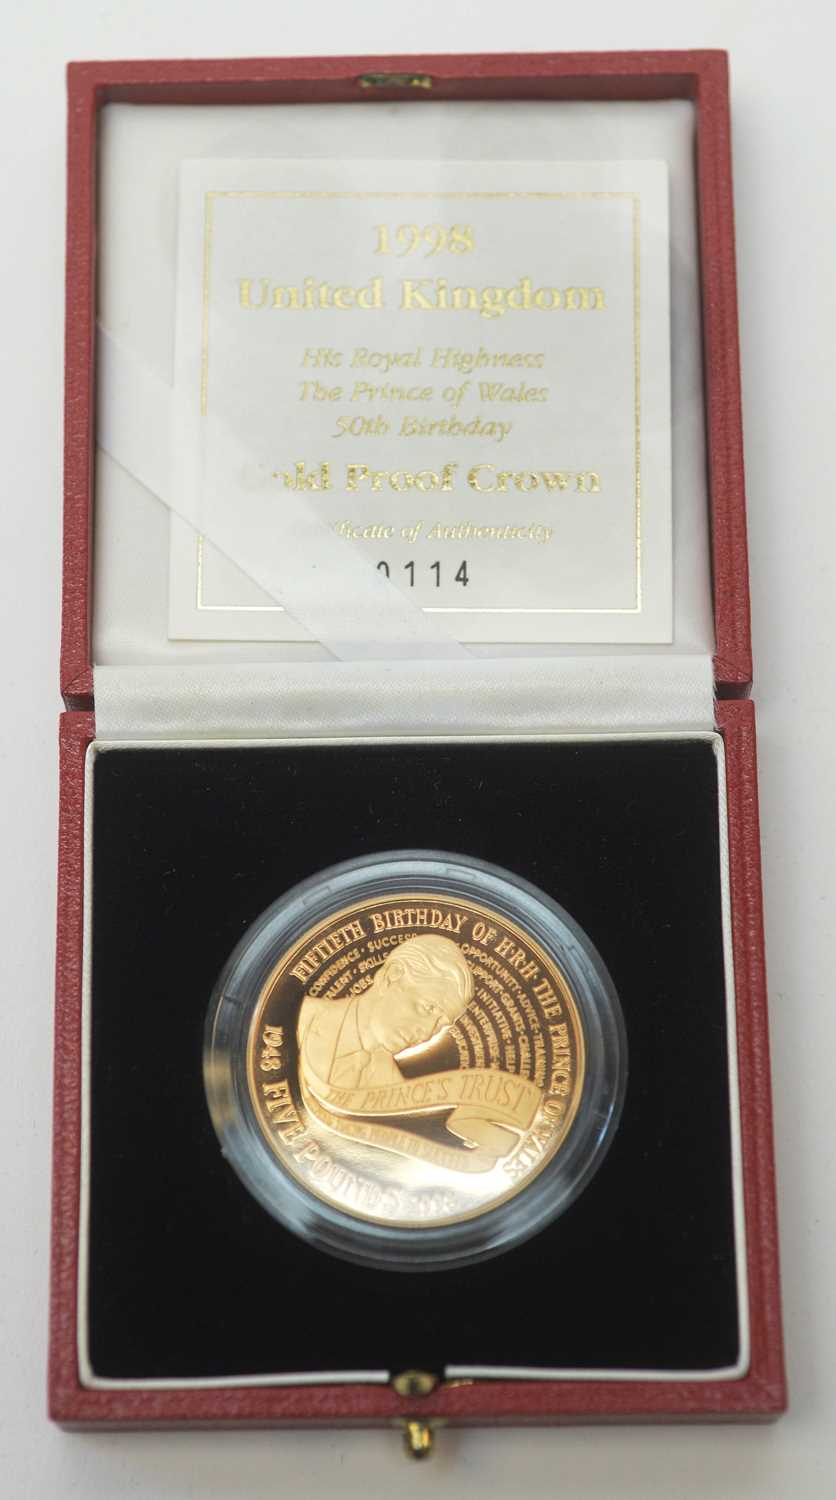 18 - H.R.H. Prince of Wales 50th Birthday gold proof crown